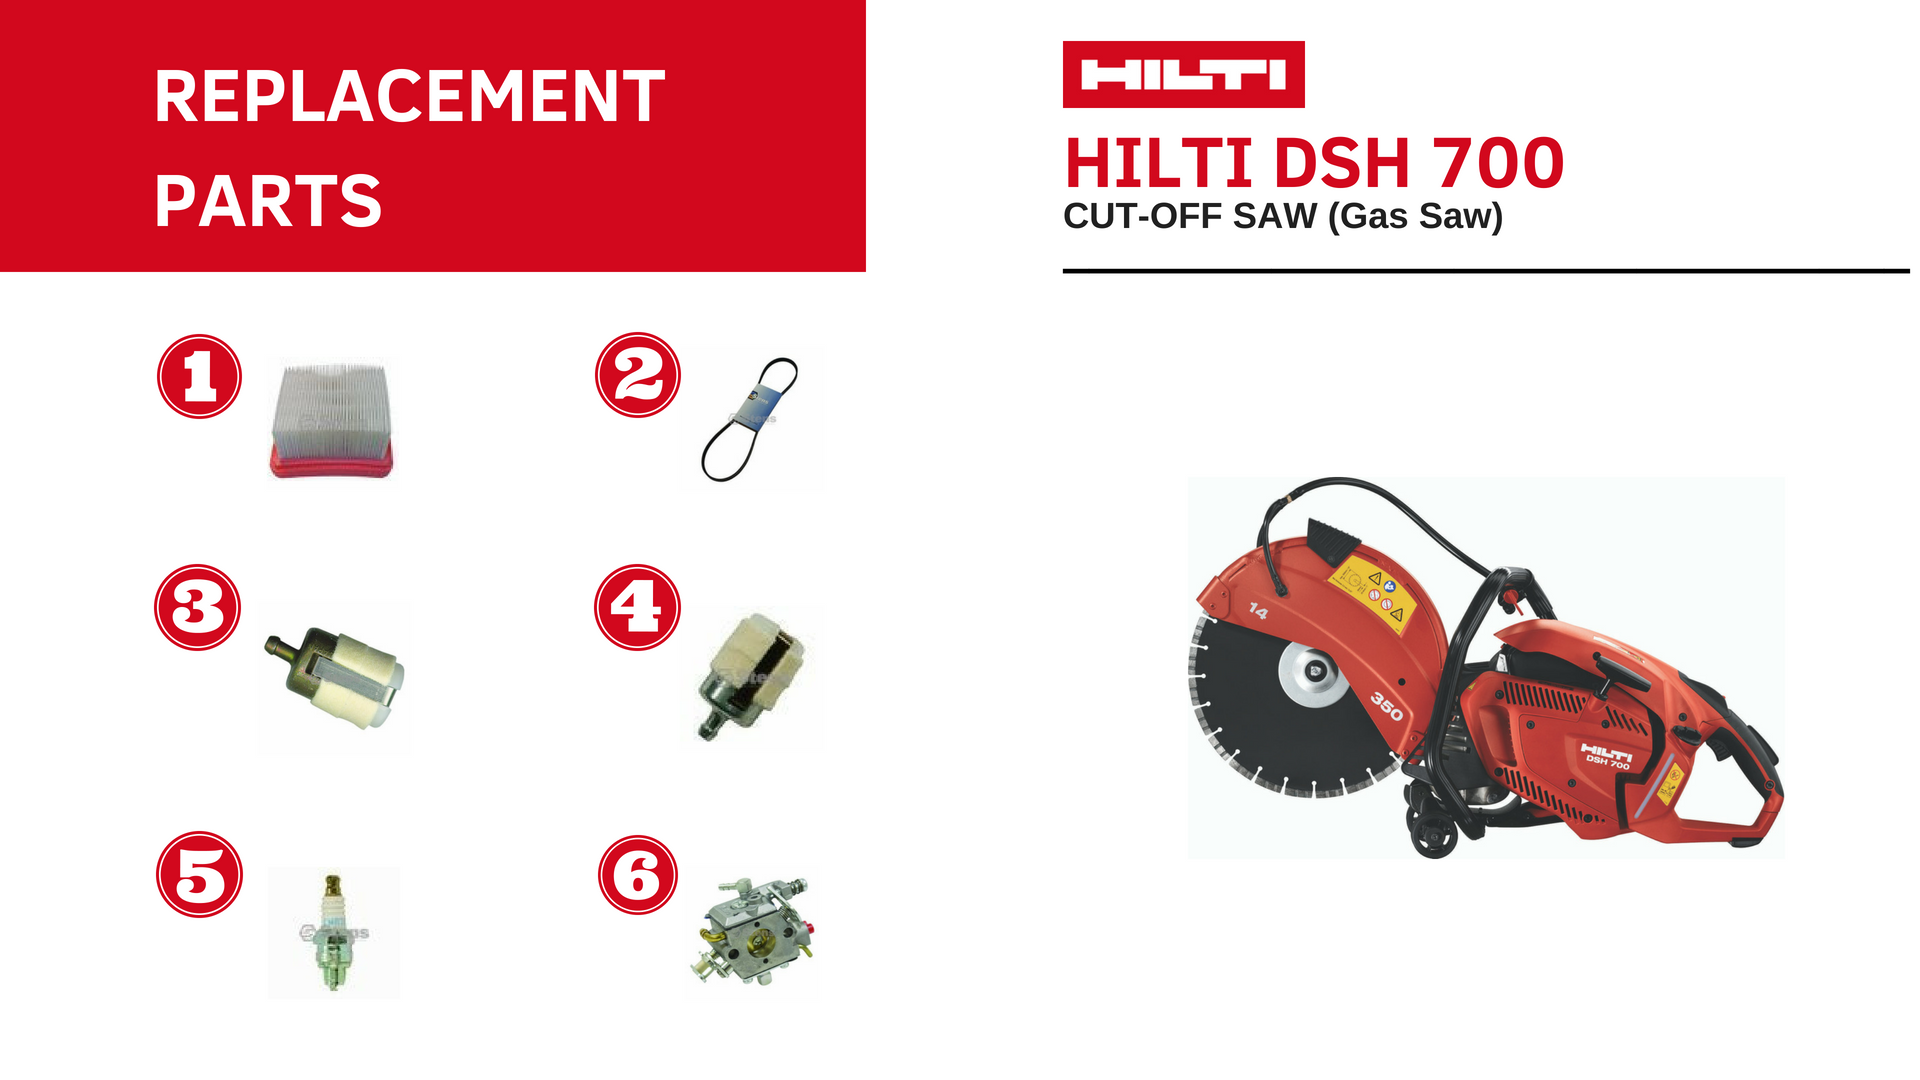 HILTI DSH 700 parts list - HILTI cut-off saw